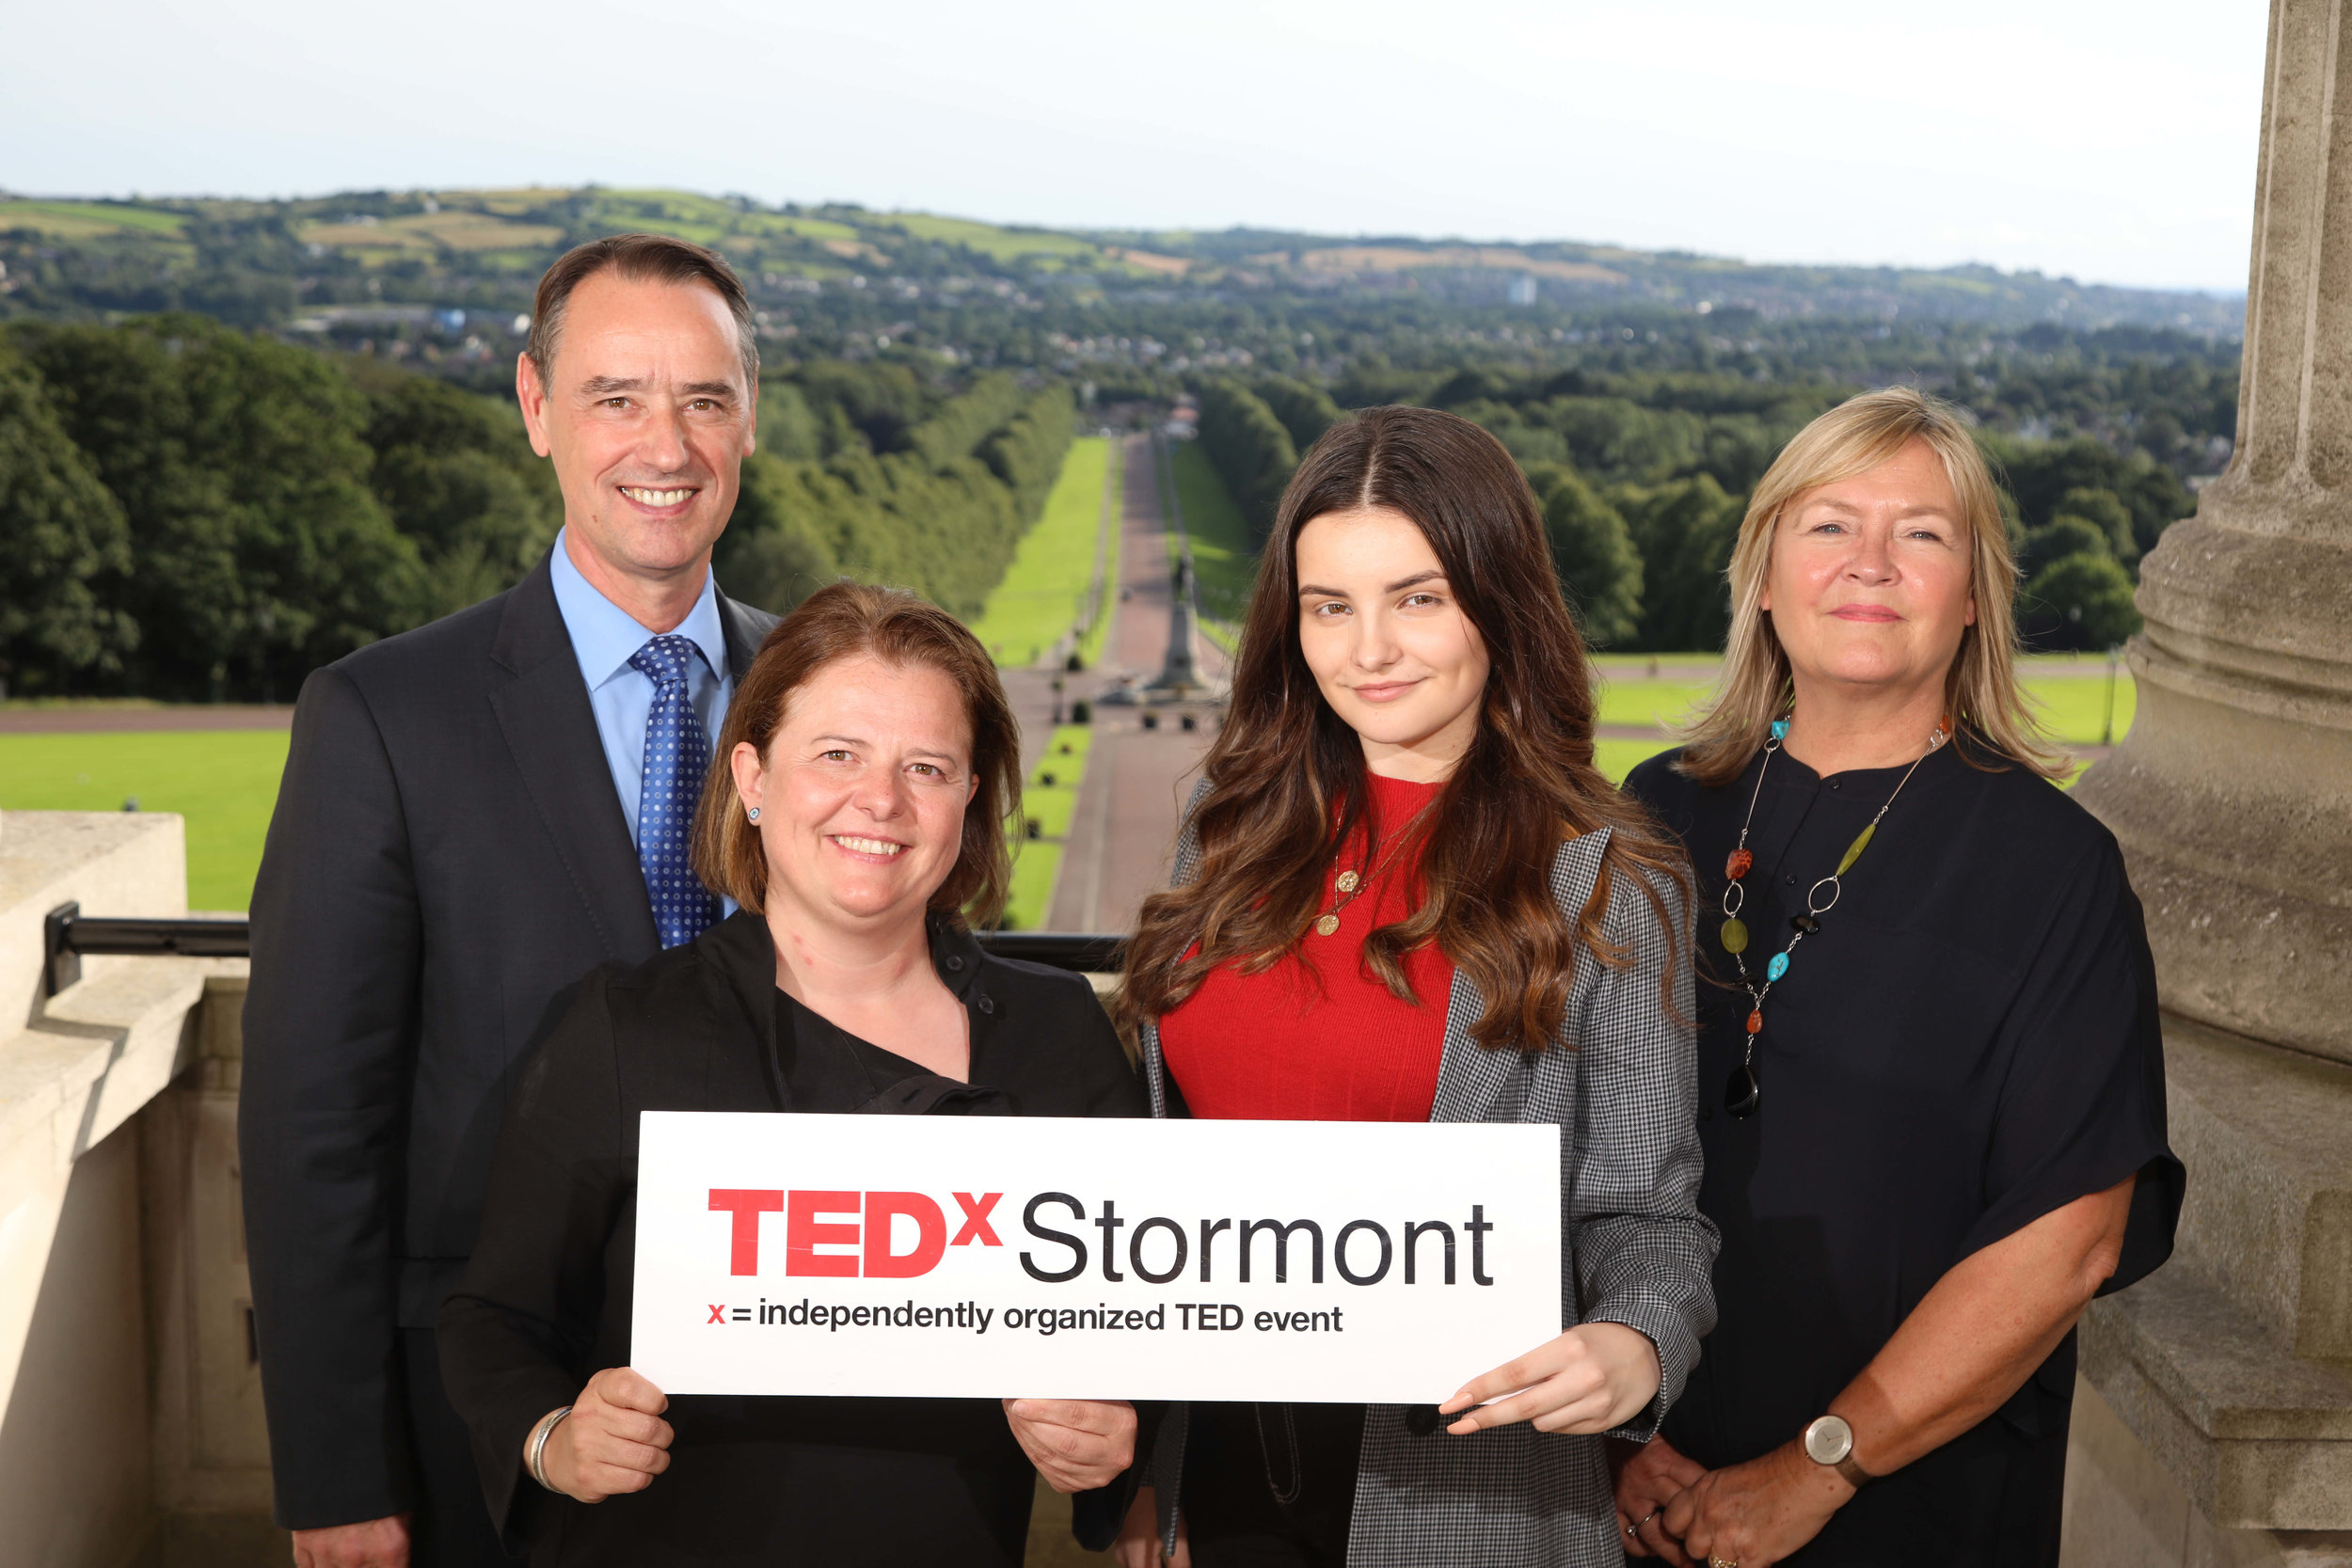 Winner of 'Talk like TED', Tegan Nesbitt with the judging panel, (Left to right) Mark Browne, The Executive Office, Eva Grosman, TEDxStormont Curator and Pippa Arlow, Smarts